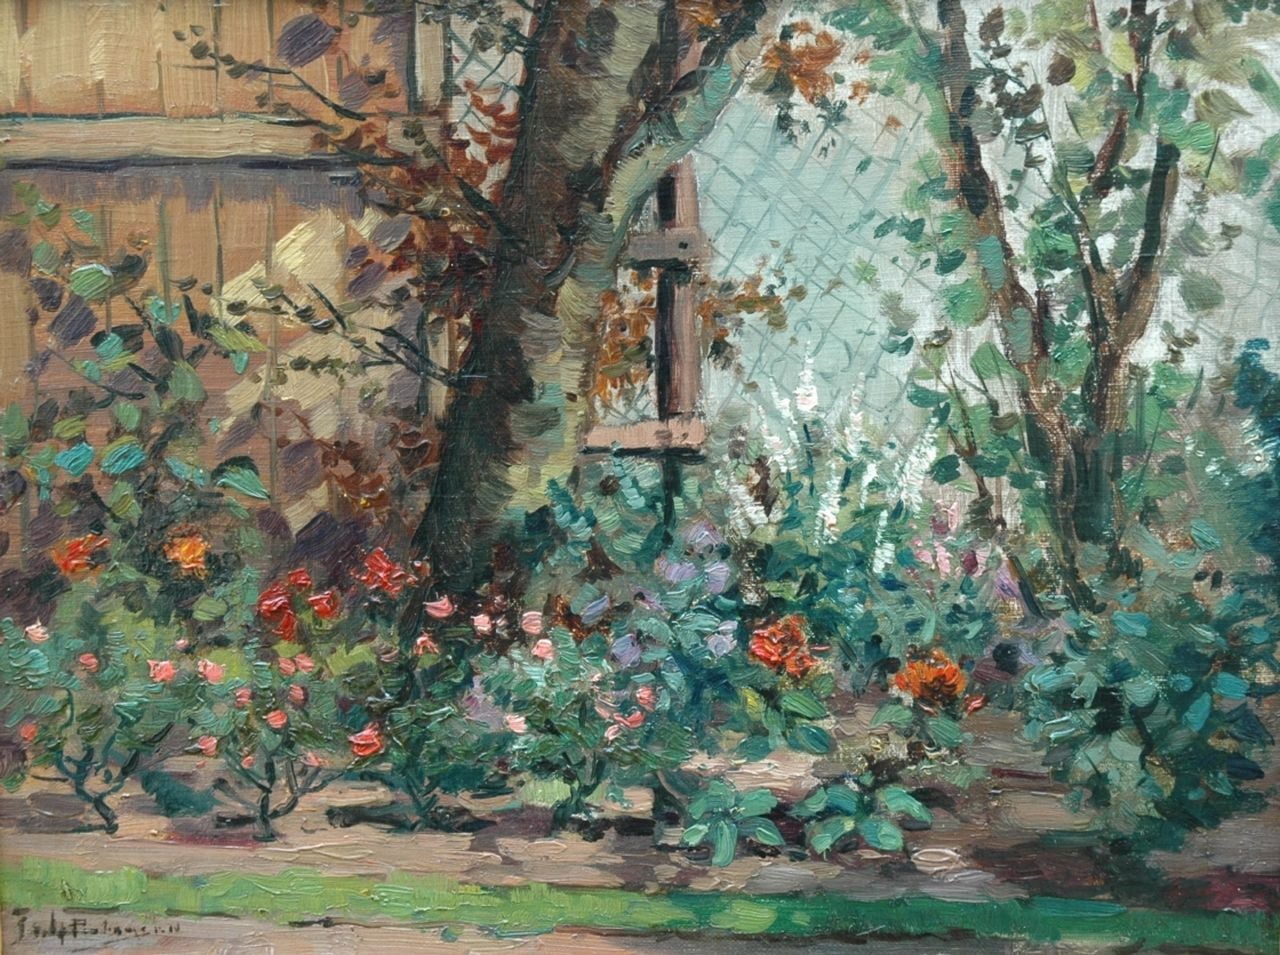 Johannes Pietersen | The rose garden, oil on cardboard, 30.0 x 39.4 cm, signed l.l.